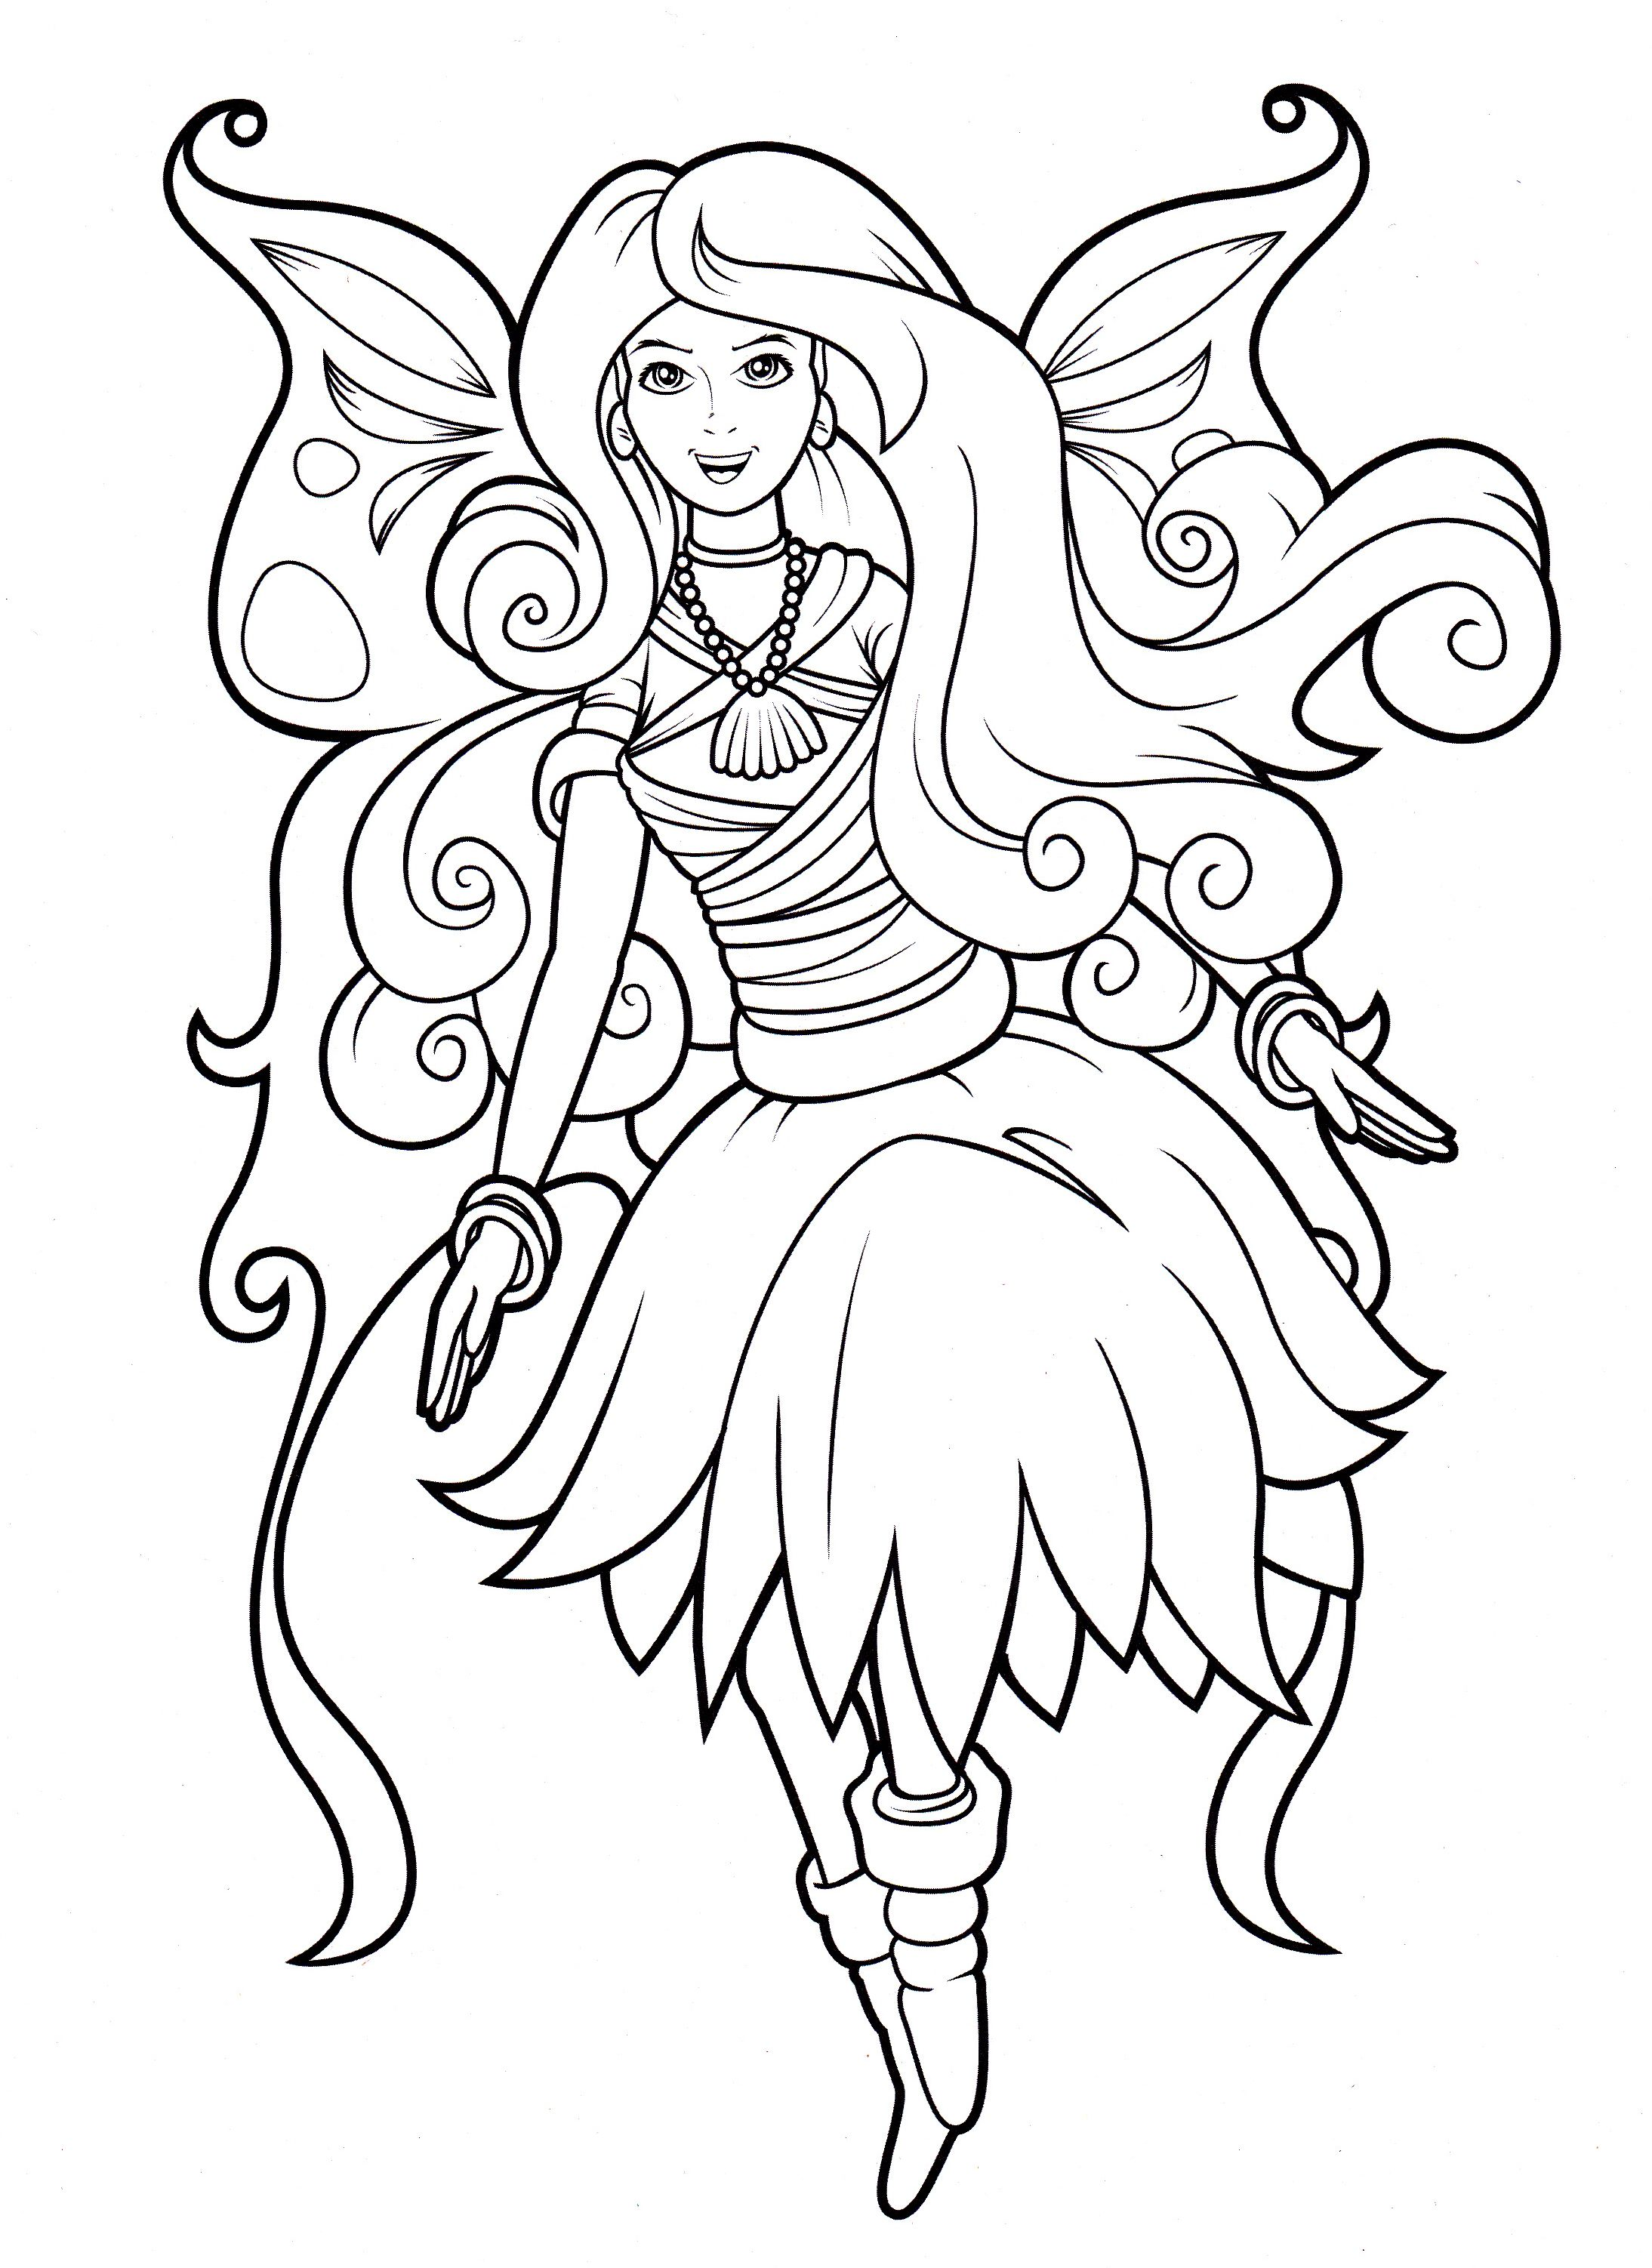 fairy from lilly butterfly coloring book coloring pages scanned pinterest coloring books. Black Bedroom Furniture Sets. Home Design Ideas